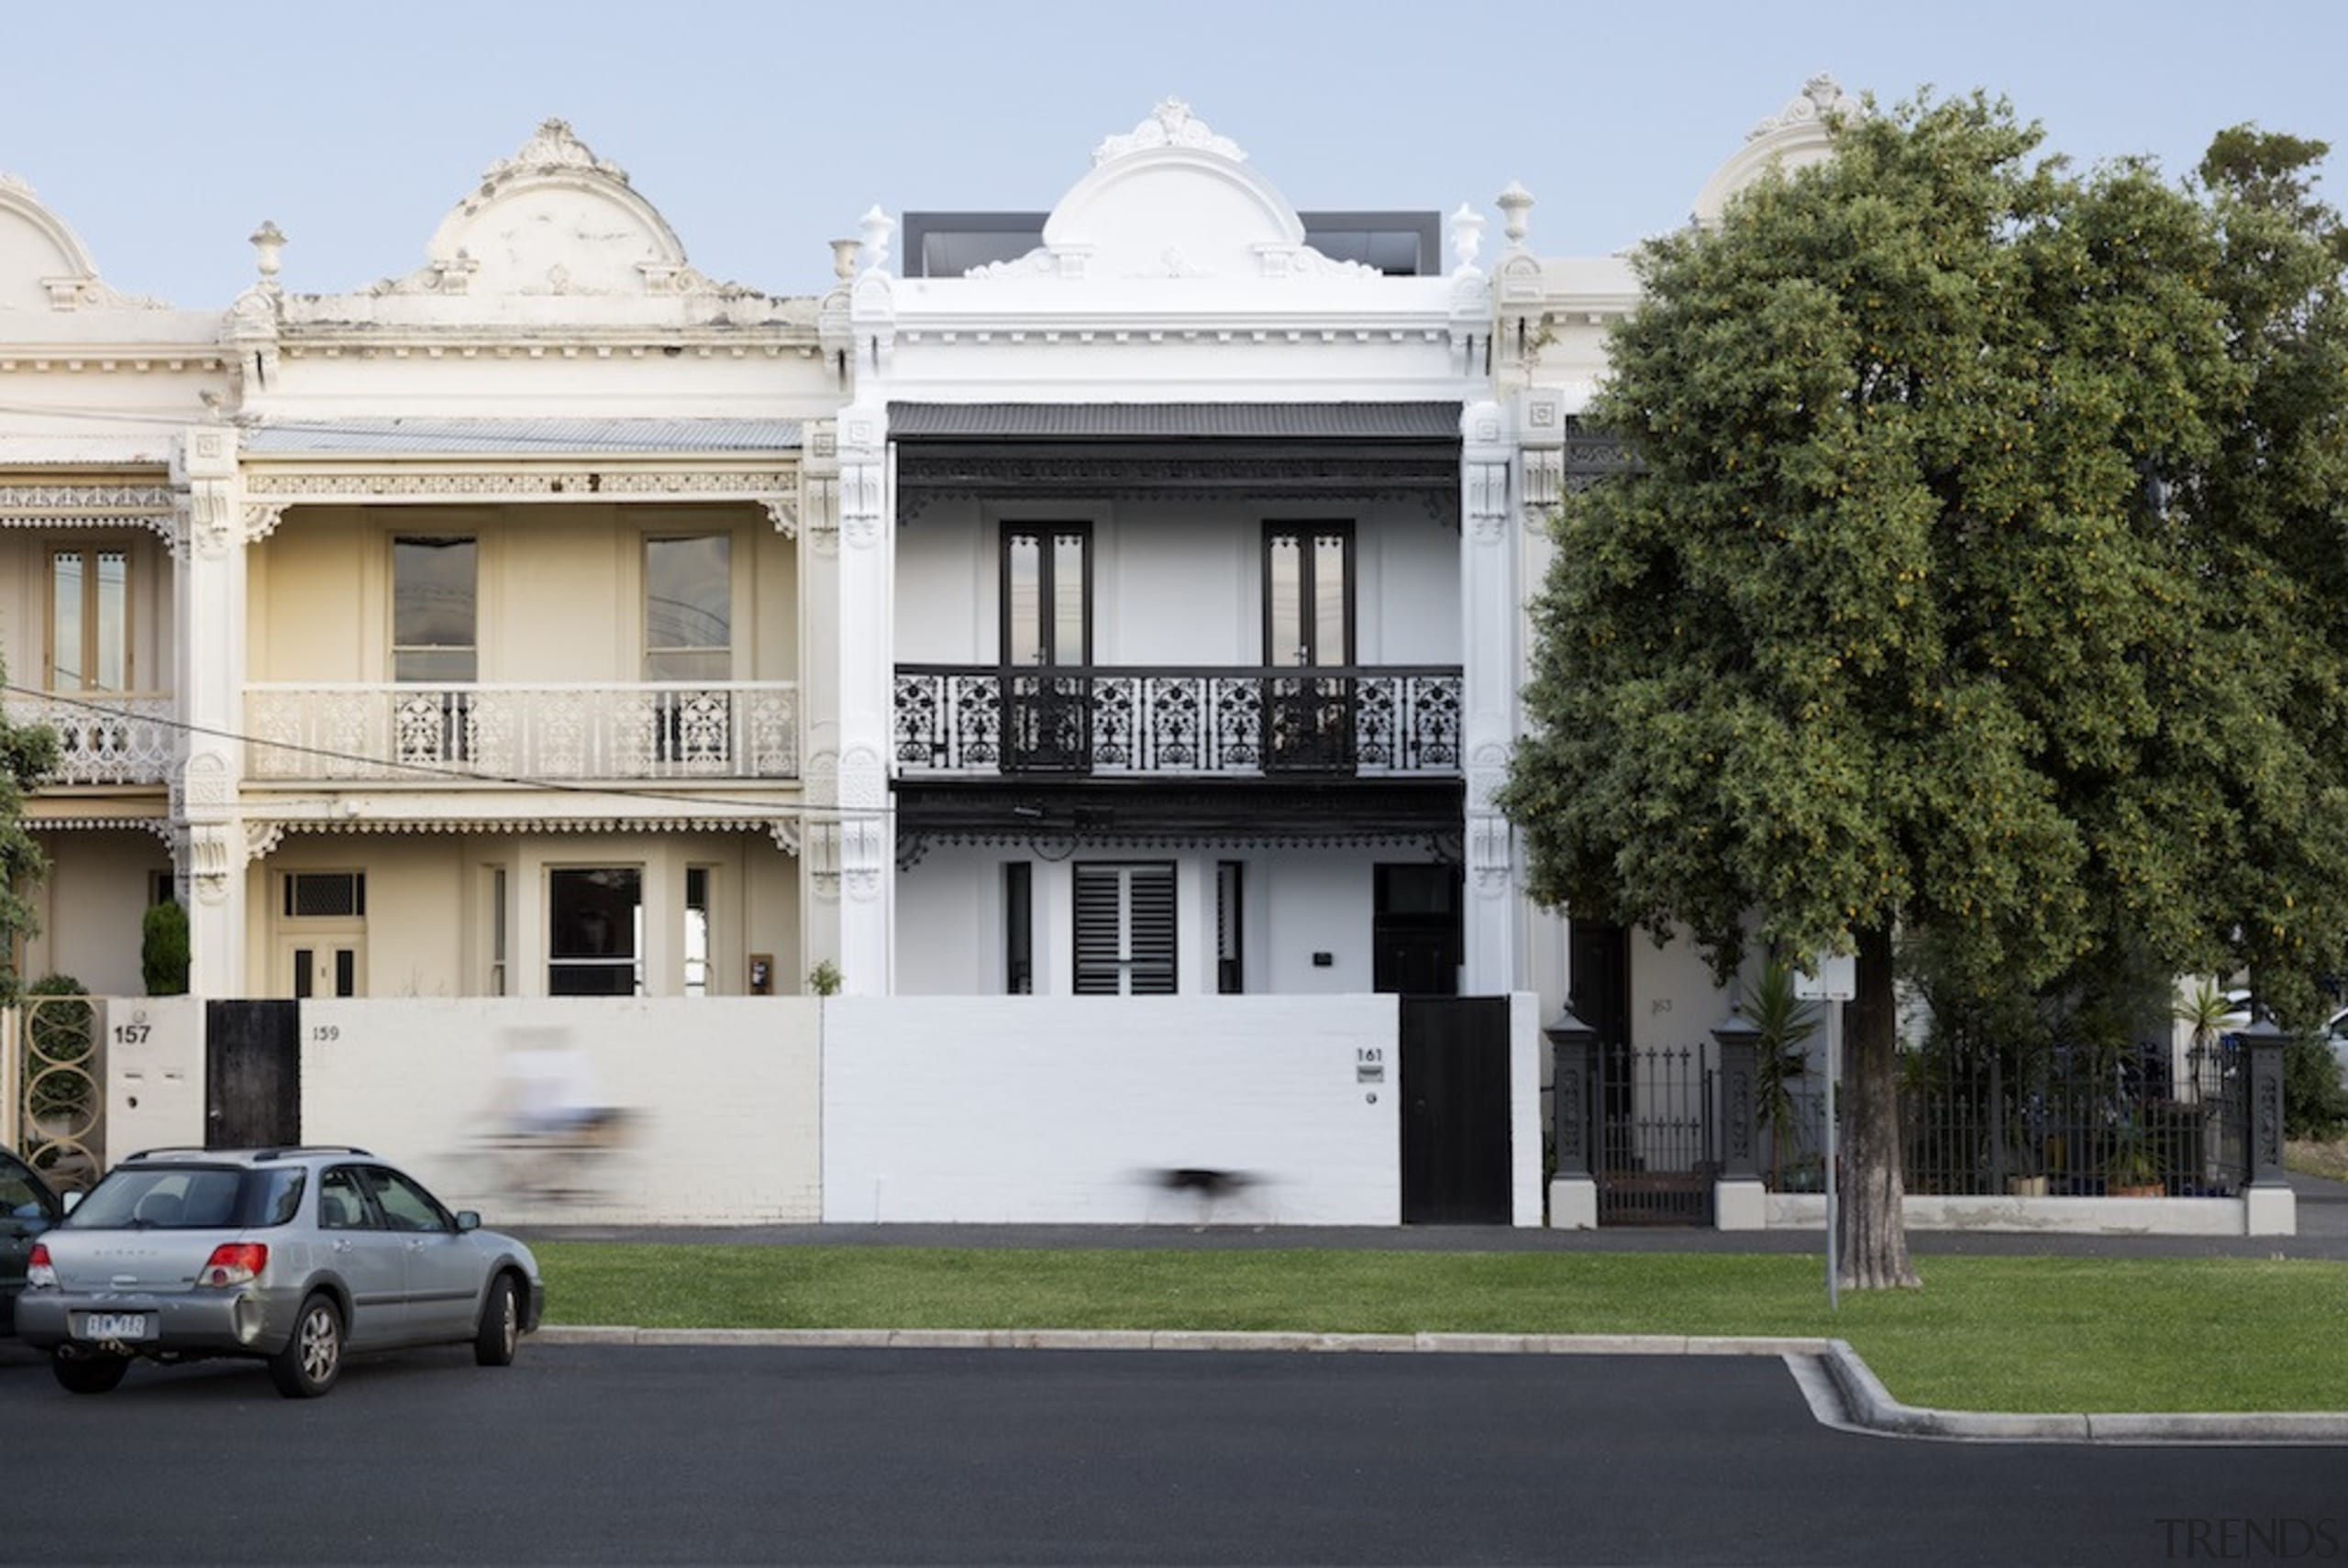 This project transforms a small Victorian terrace into architecture, building, classical architecture, estate, facade, family car, historic house, home, house, mansion, neighbourhood, official residence, property, real estate, residential area, white